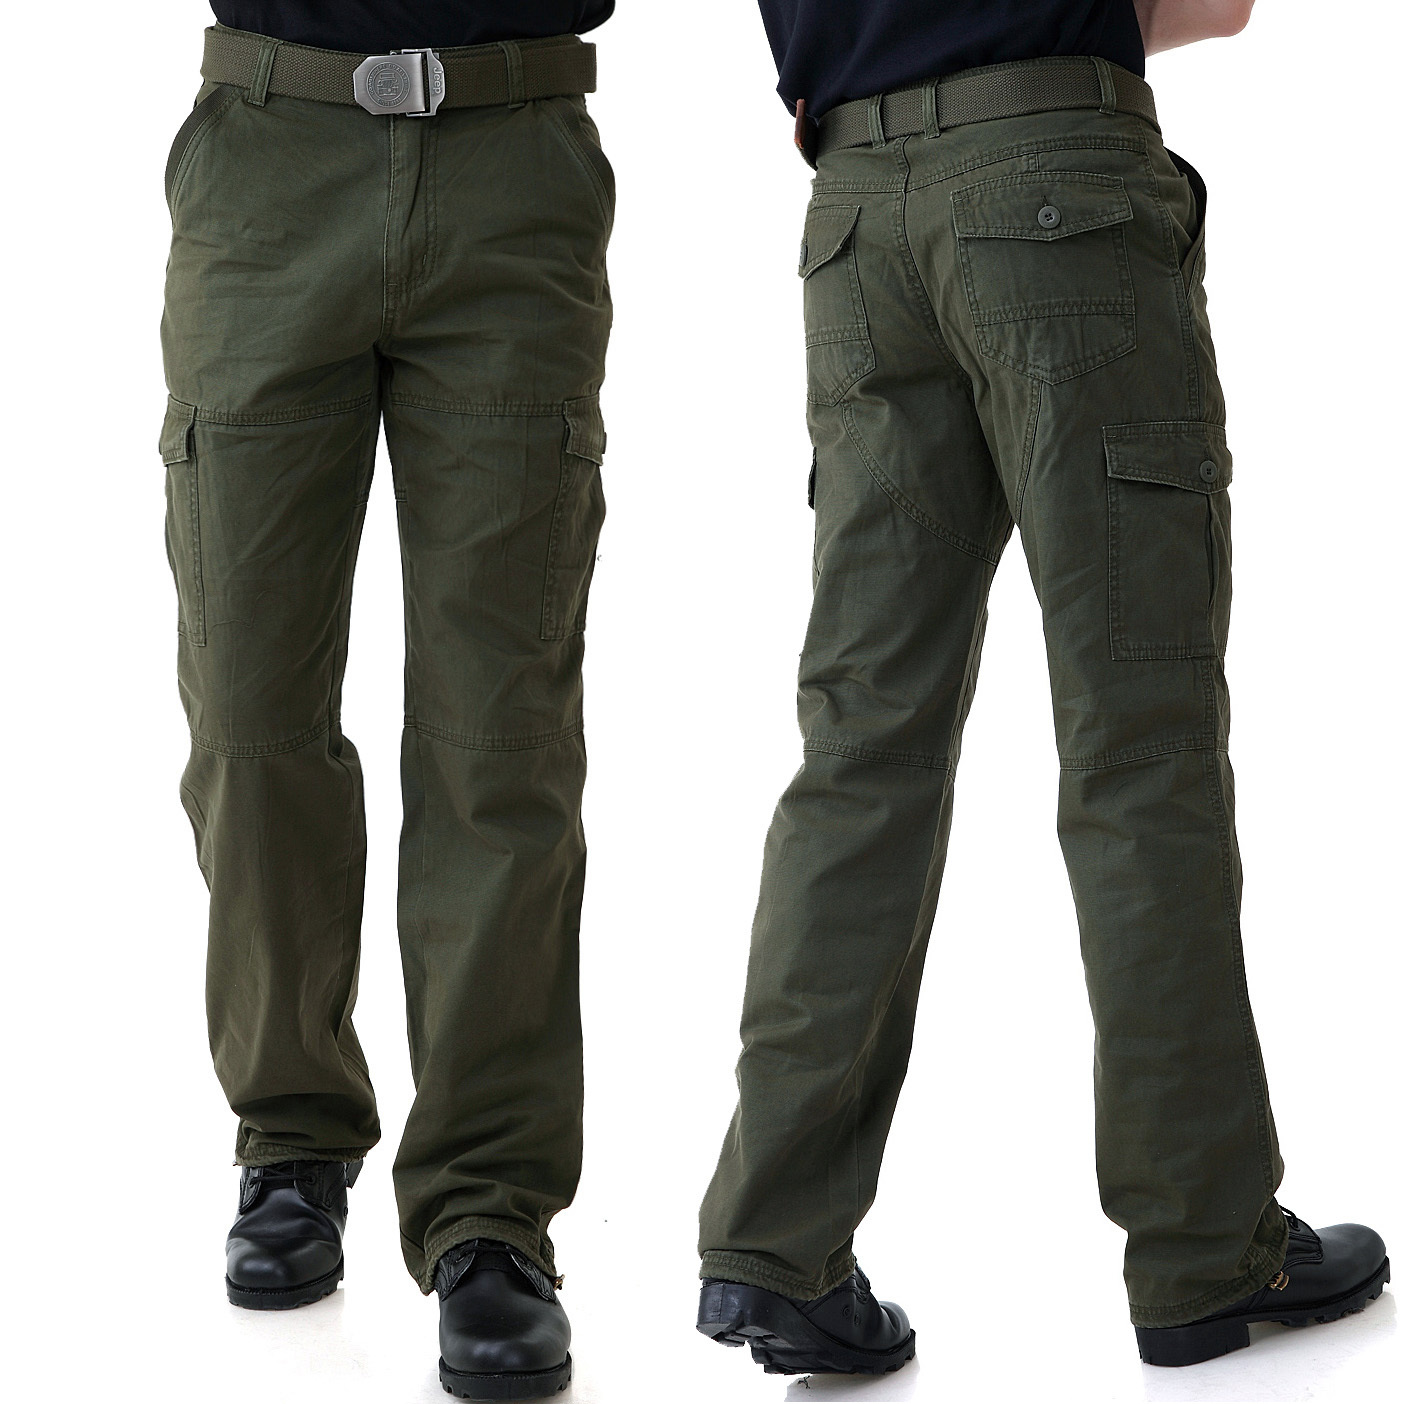 Mens leisure sports loose large size training pants, mountaineering camouflage pants, pure cotton military pants as training tooling pants